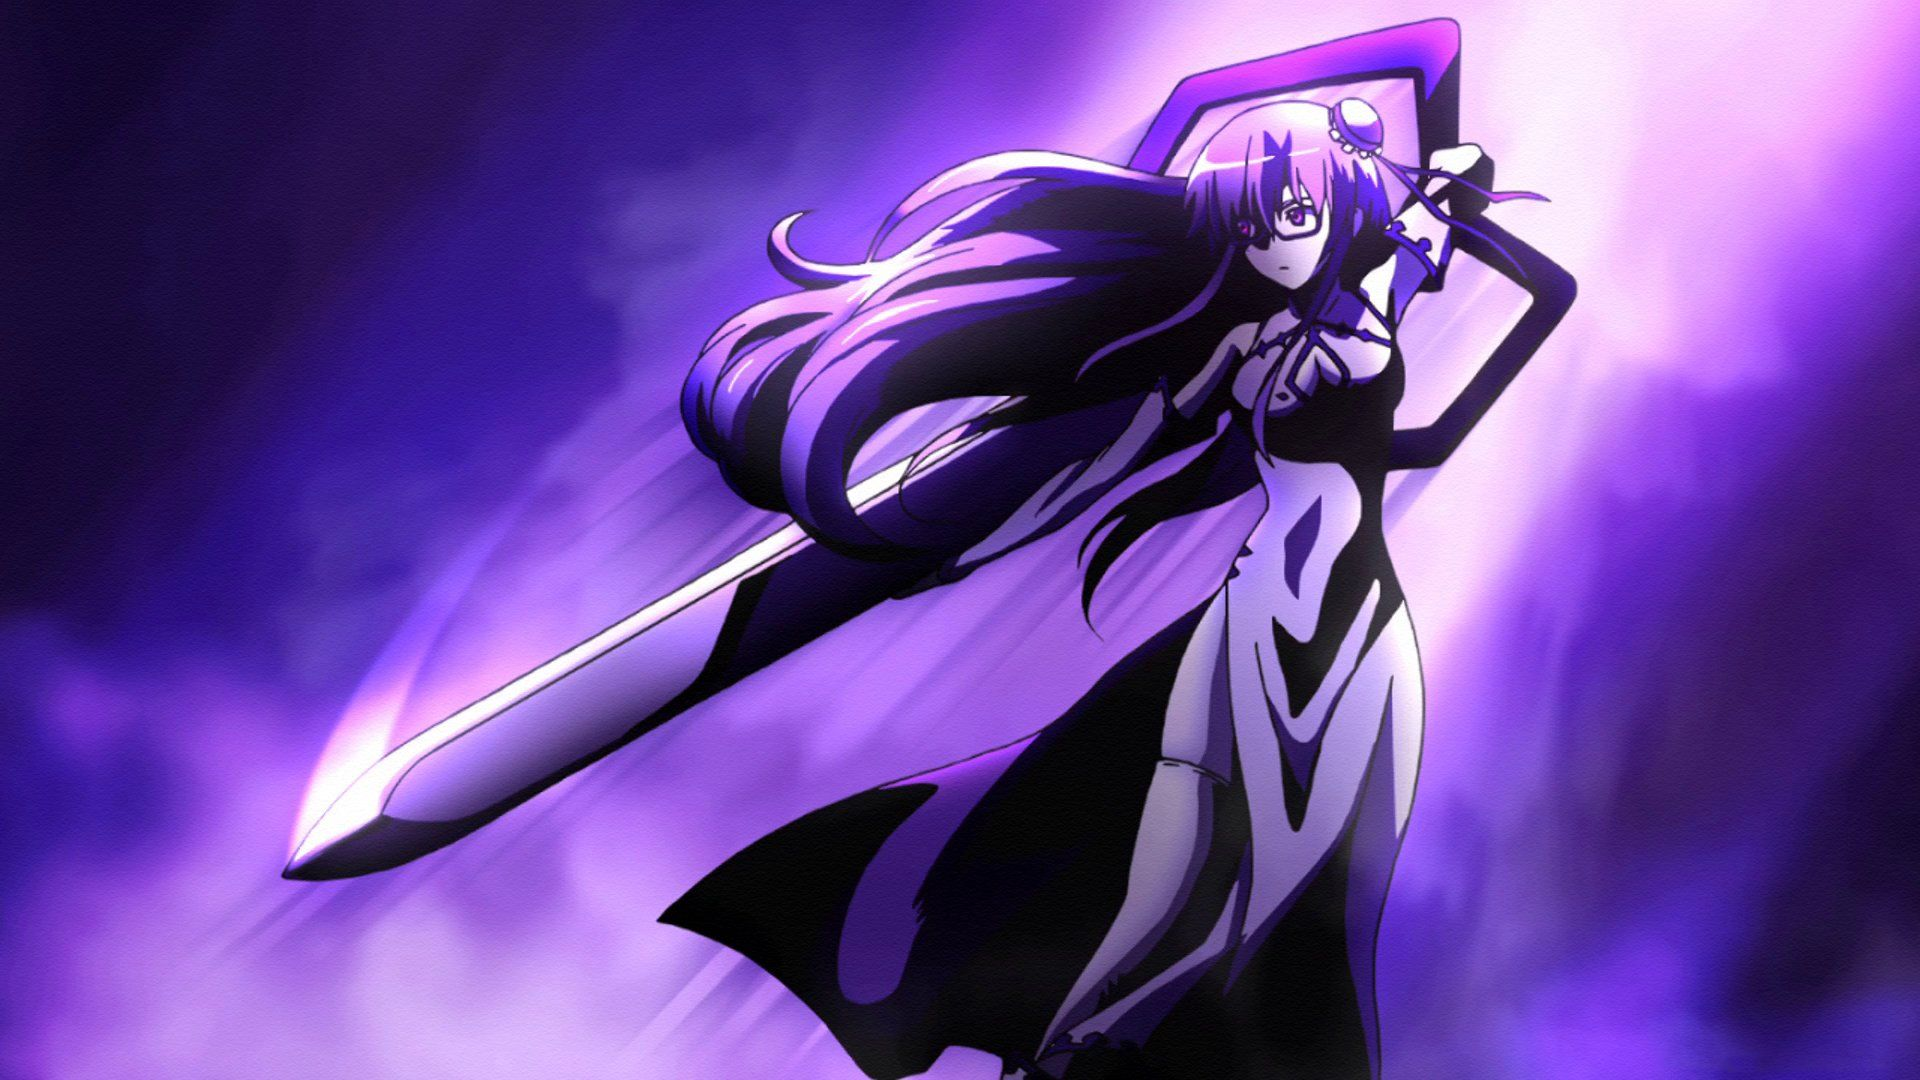 Anime Akame Ga Kill Sheele Akame Ga Kill Wallpaper Sheele